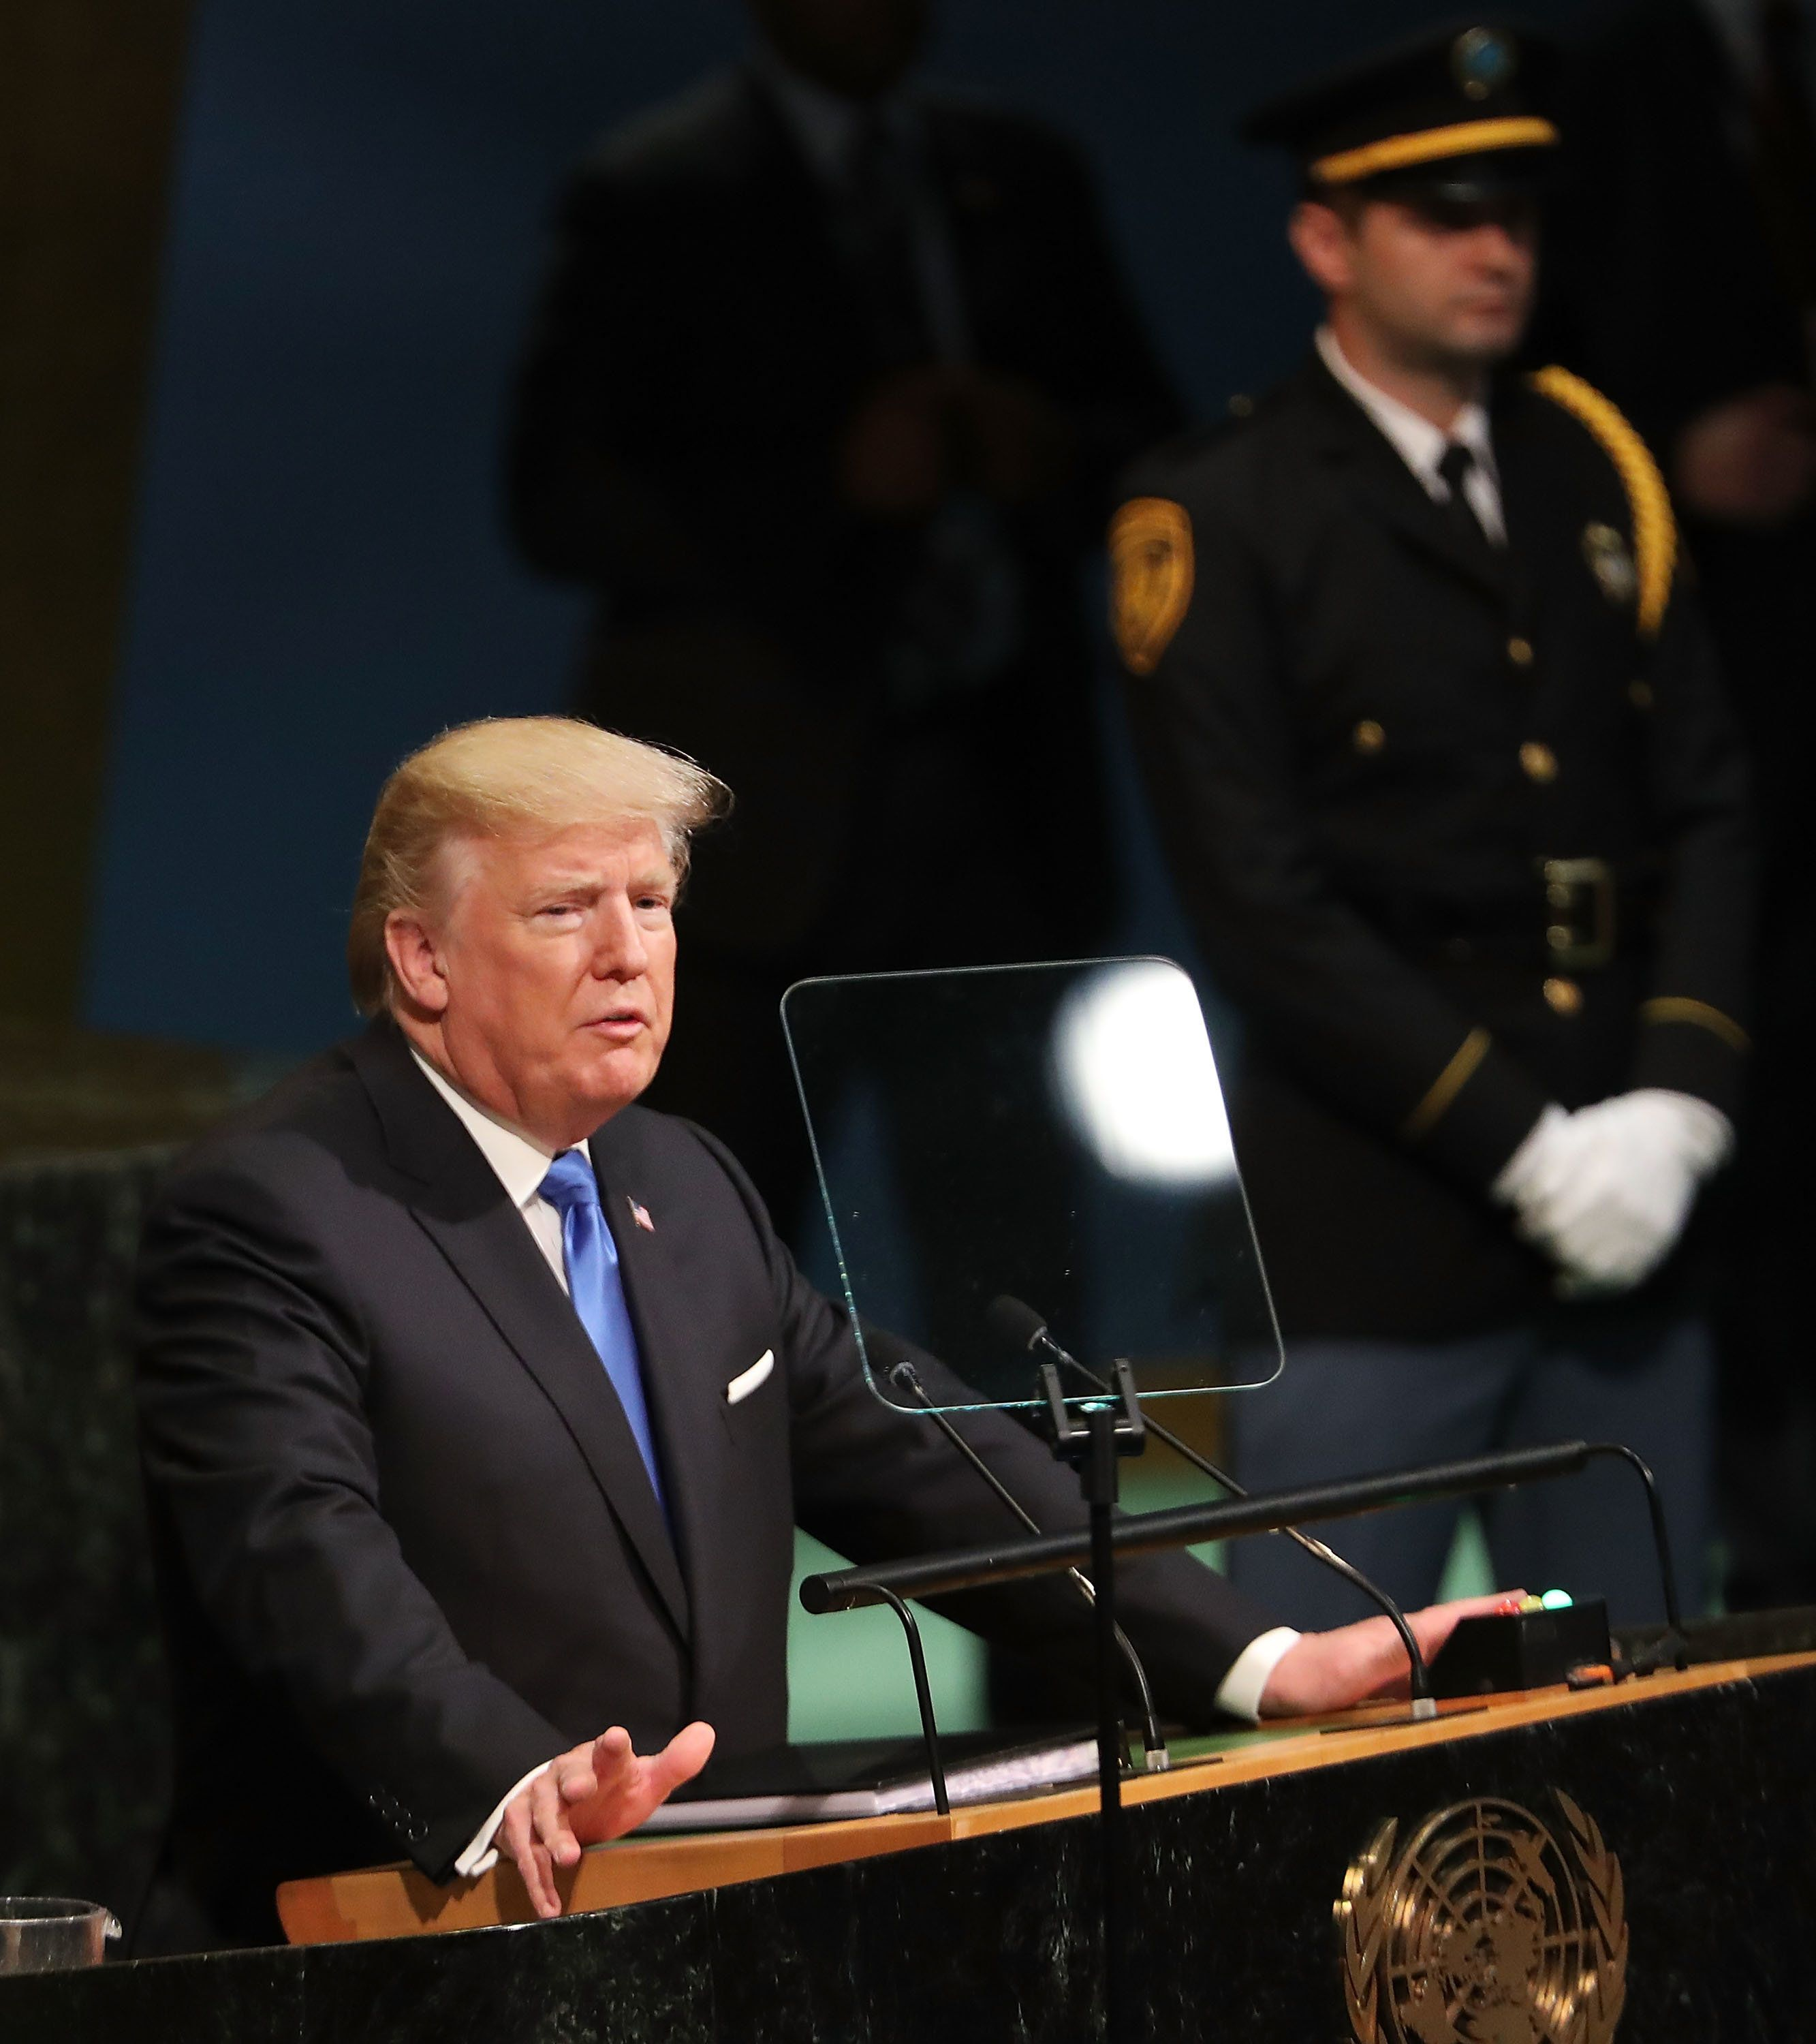 Trump's First UN Address Gets Mixed Reviews From Political Leaders